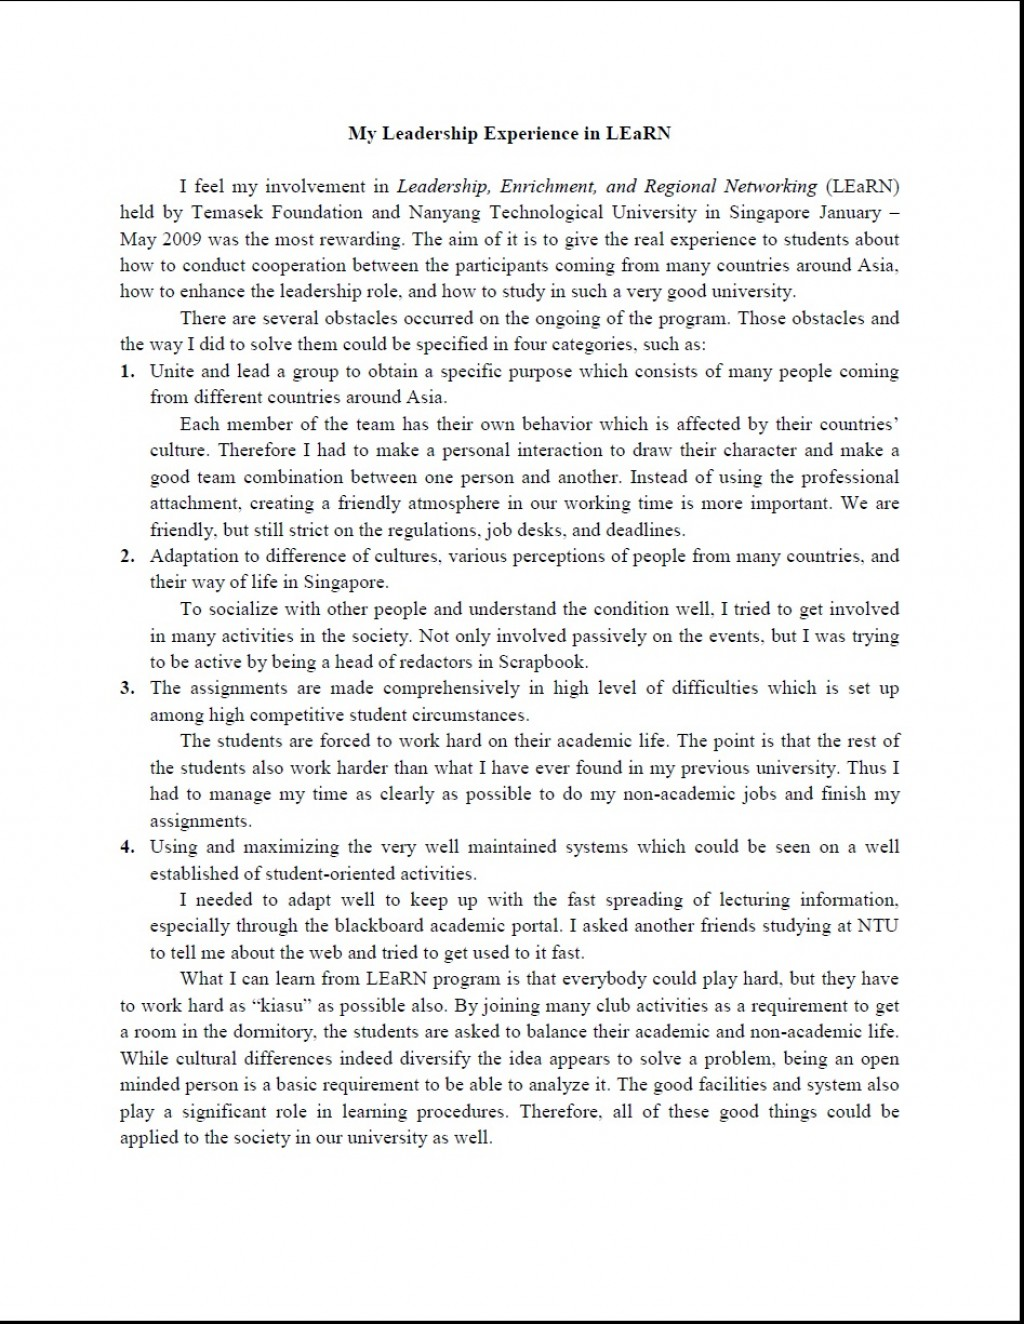 004 Essay Ideas My Leadership Amazing Thesis For Hamlet 7th Graders Narrative Prompts 4th Grade Large